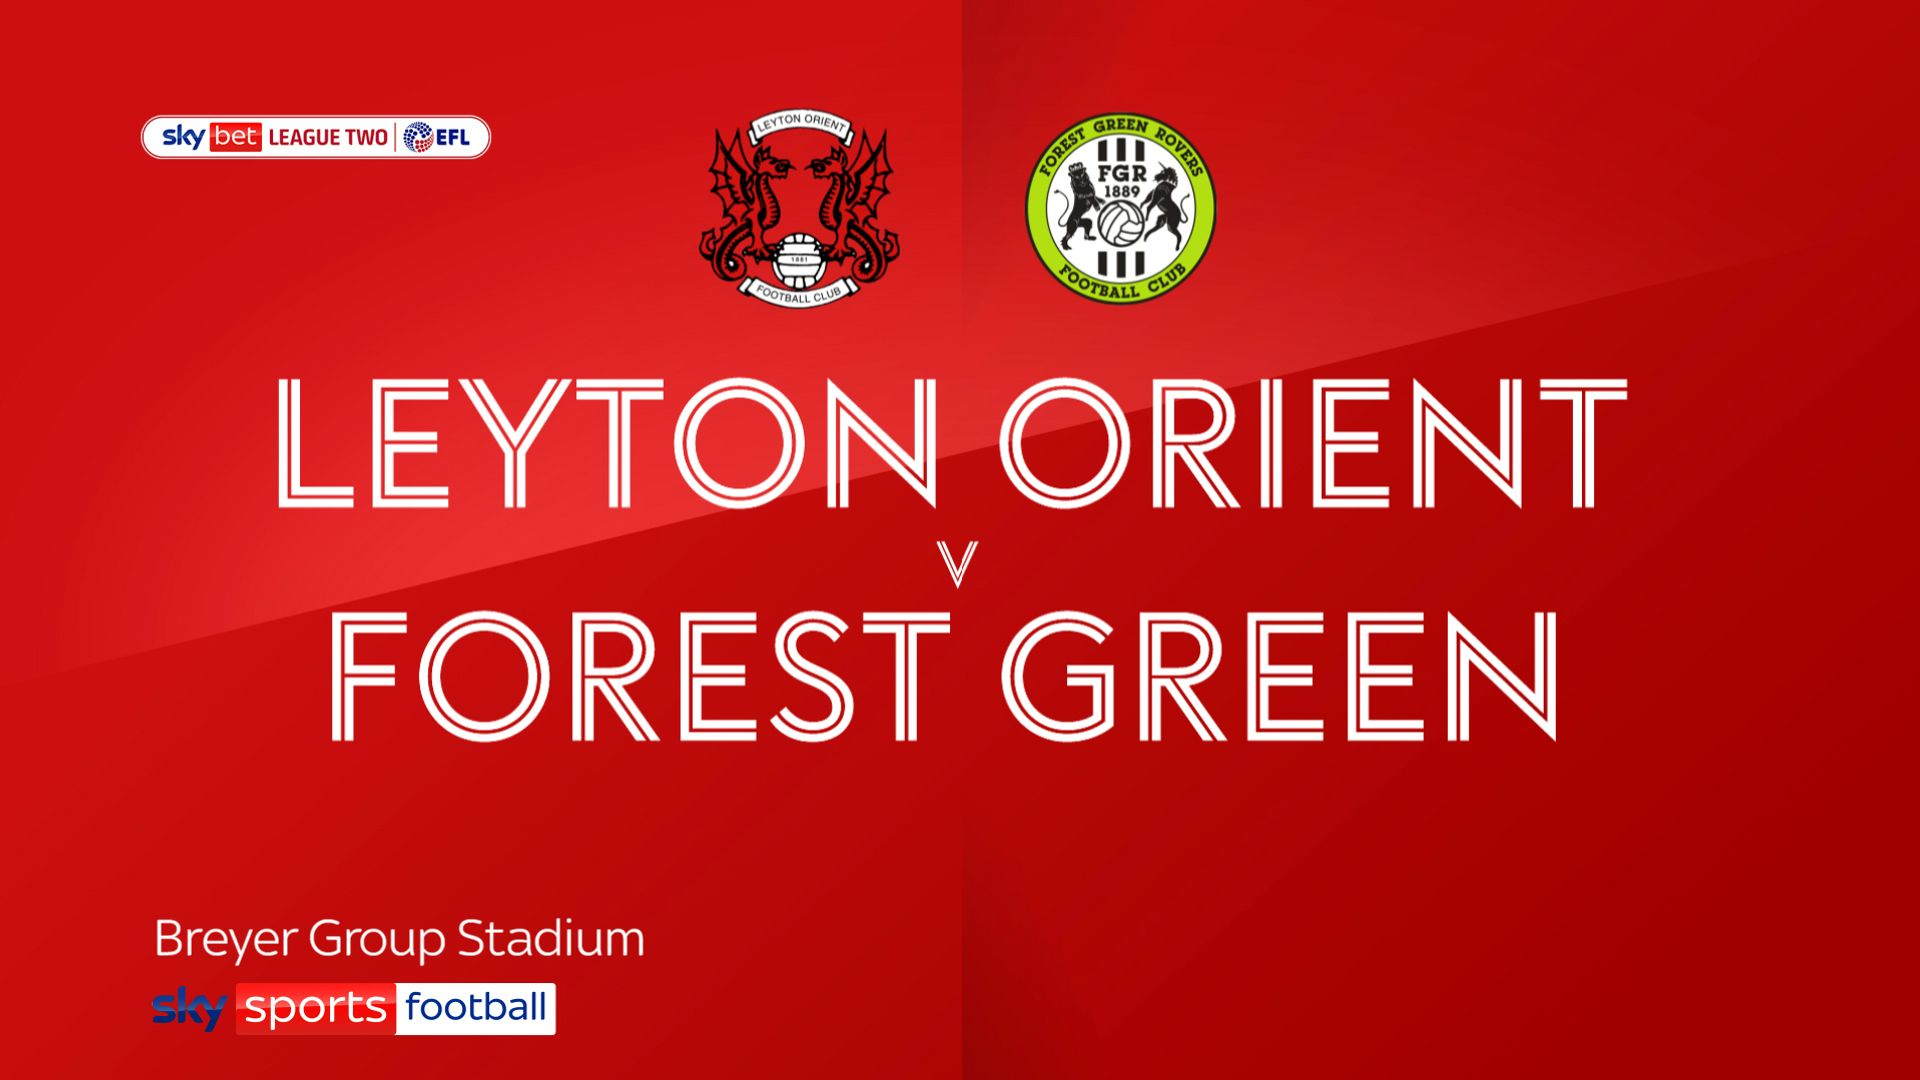 Leyton Orient strike back to hold leaders Forest Green